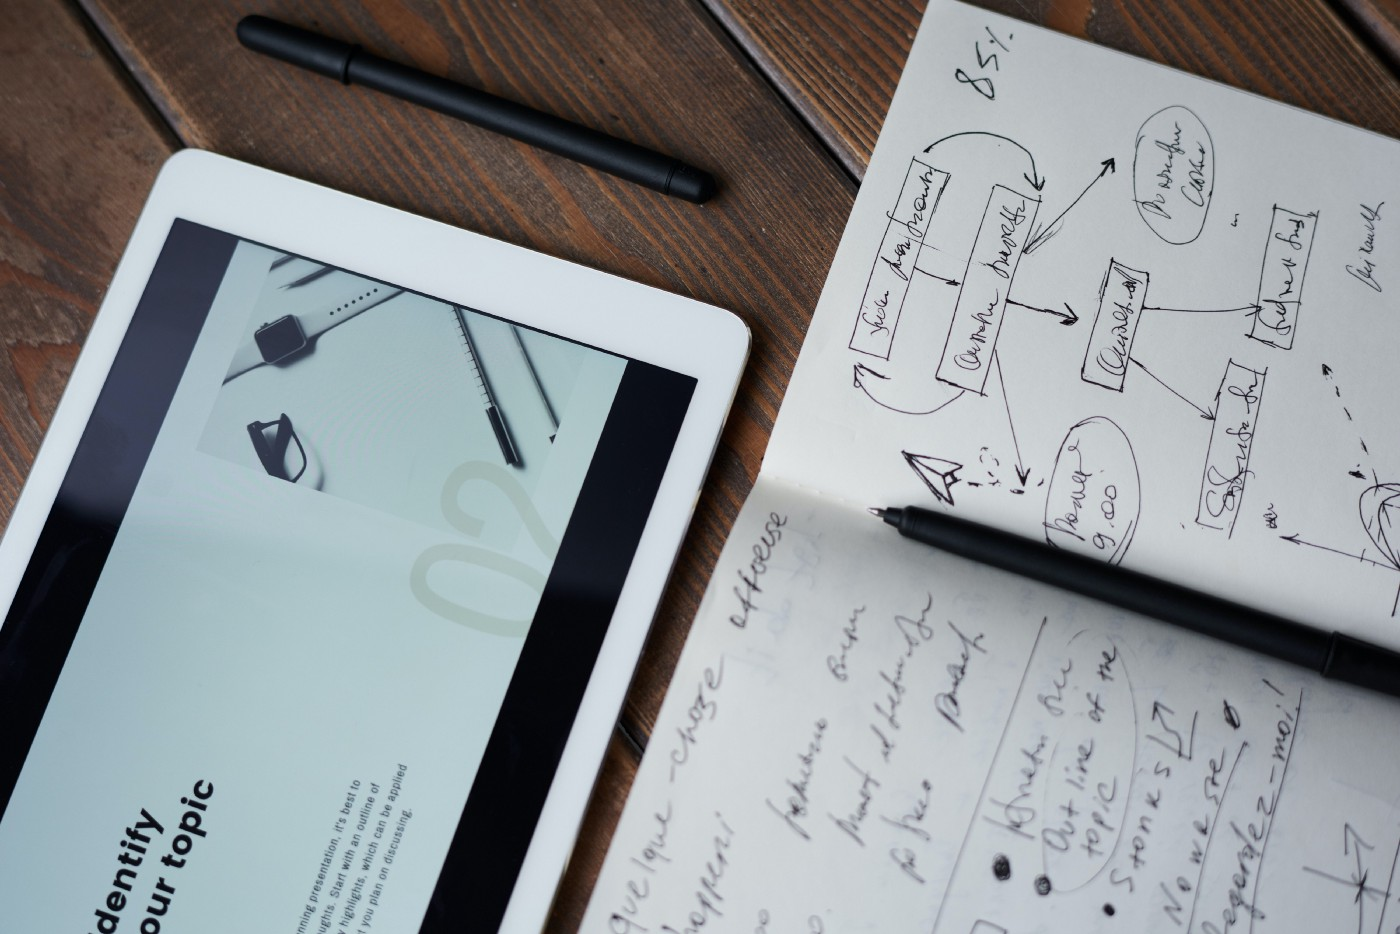 Photo of an ipad and a pen on top of a notebook.